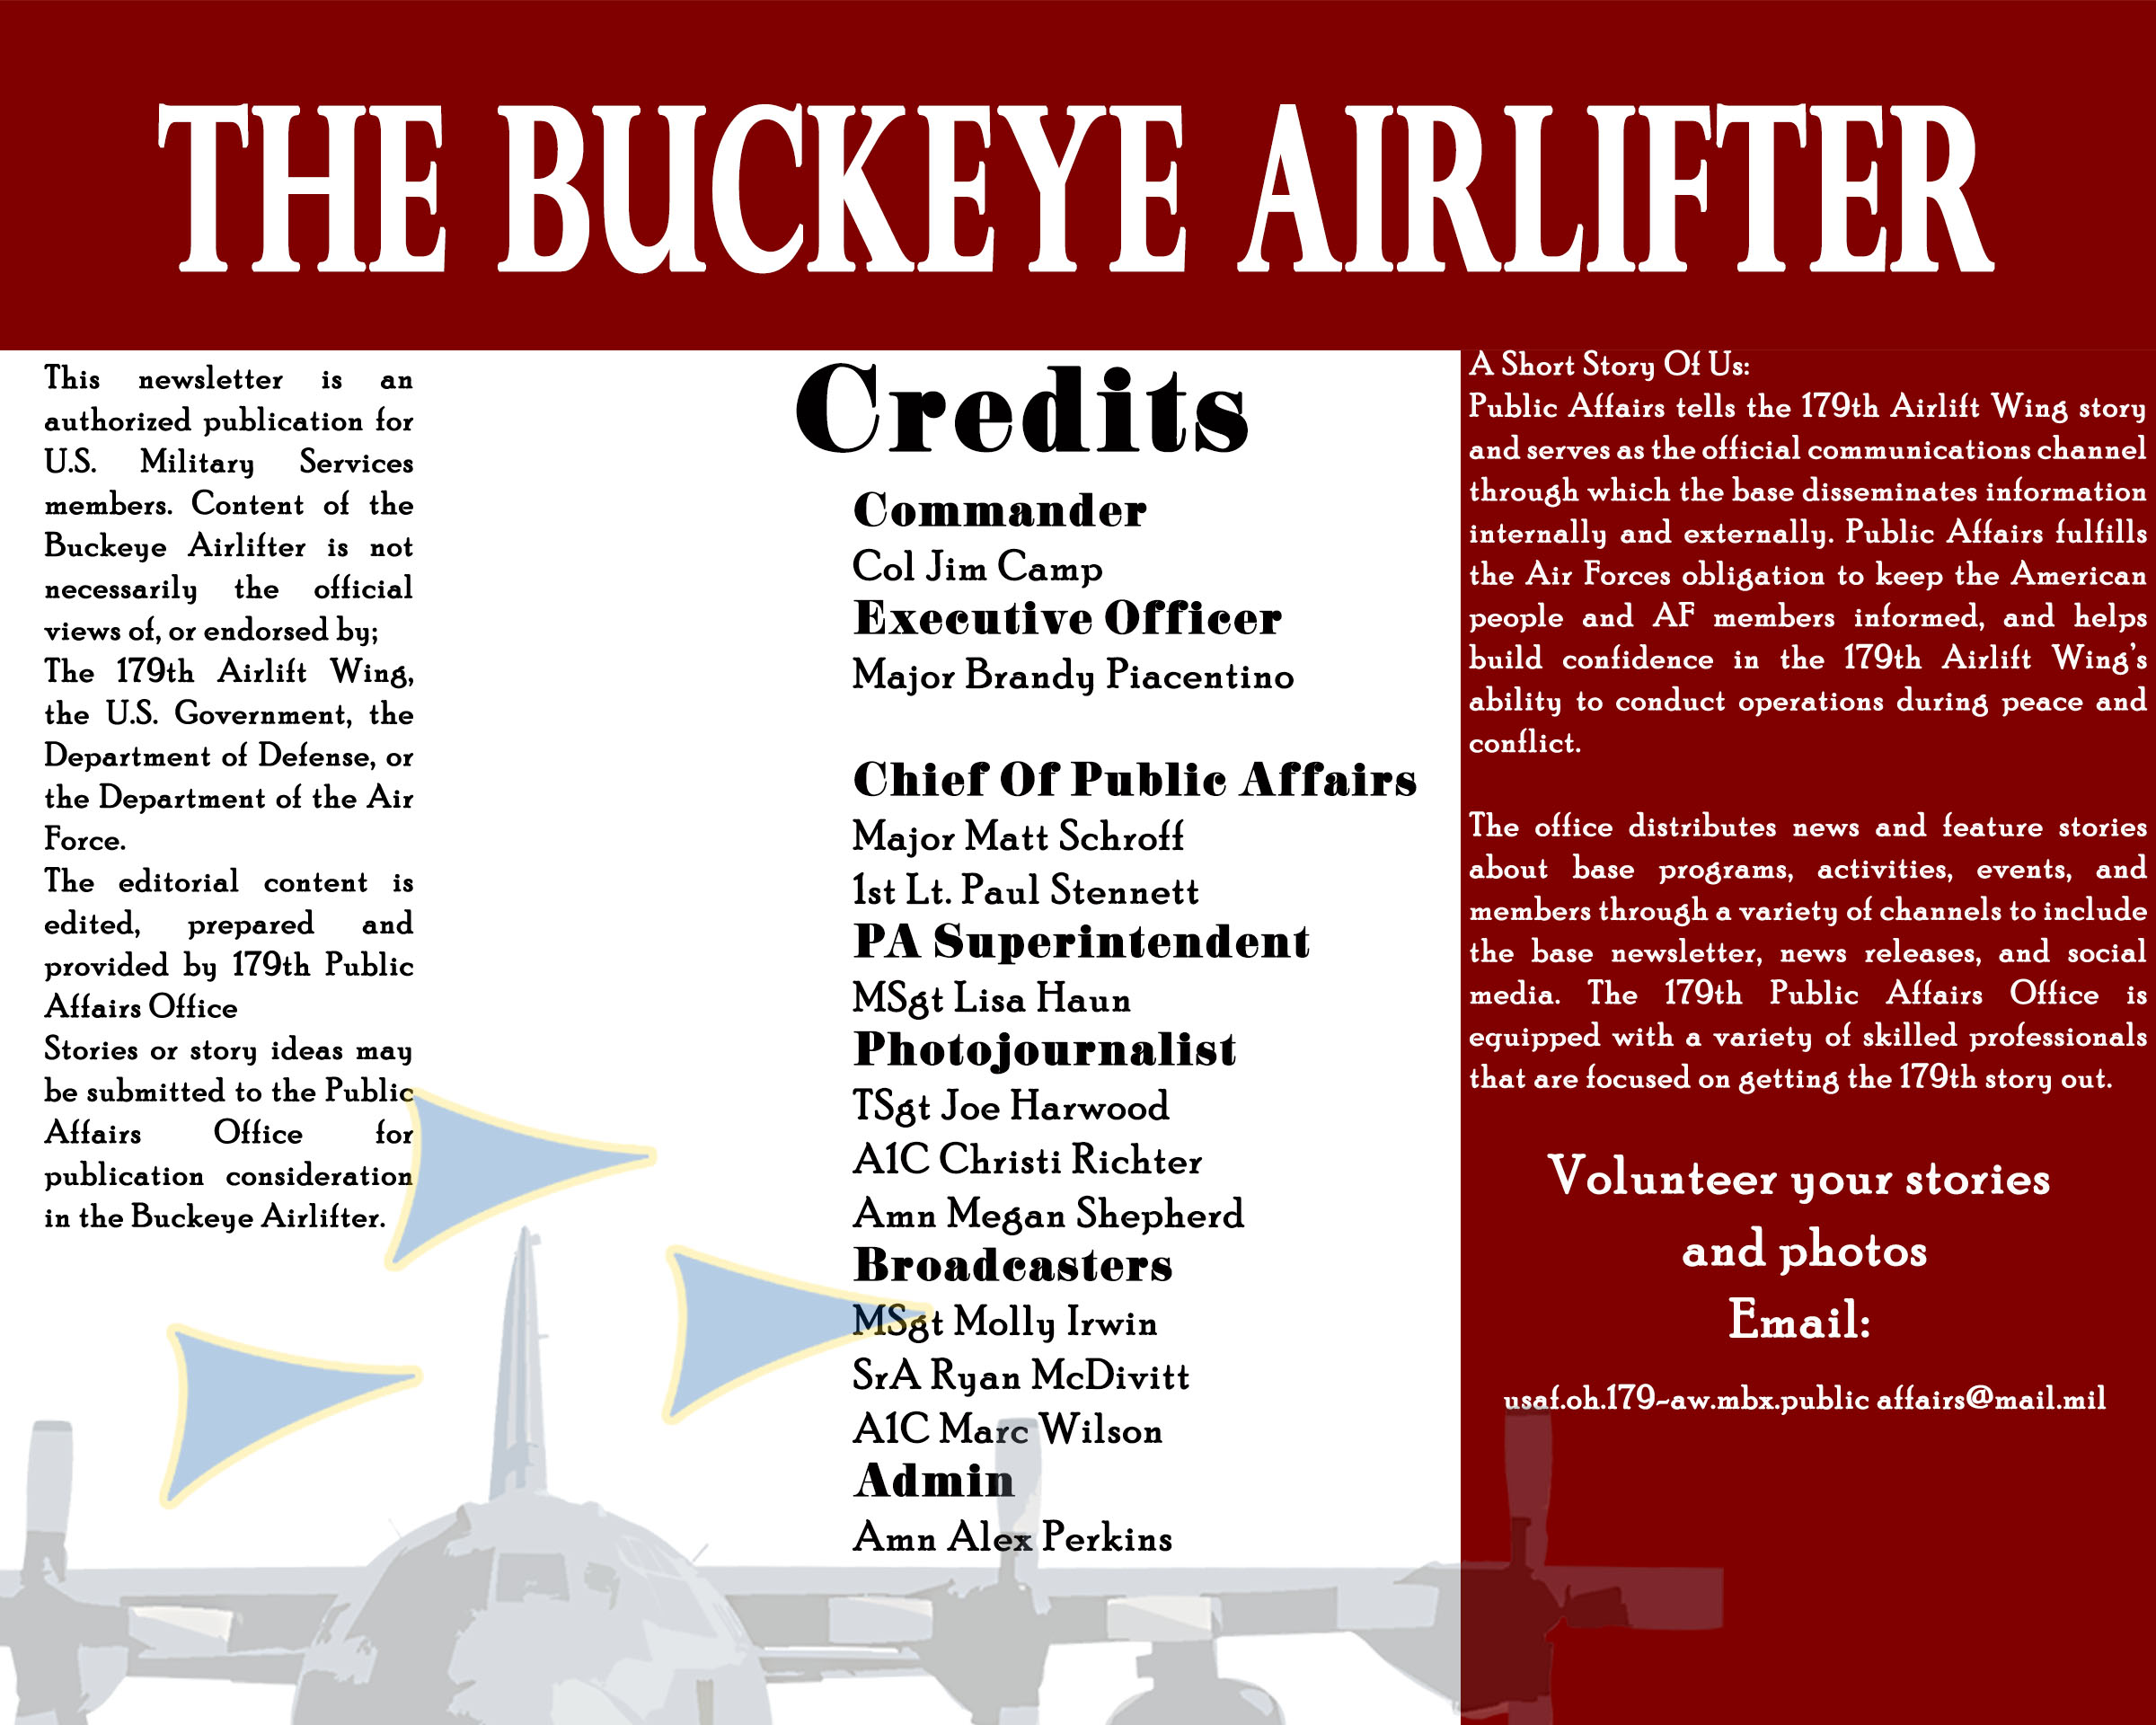 Buckeye Airlifter Credits